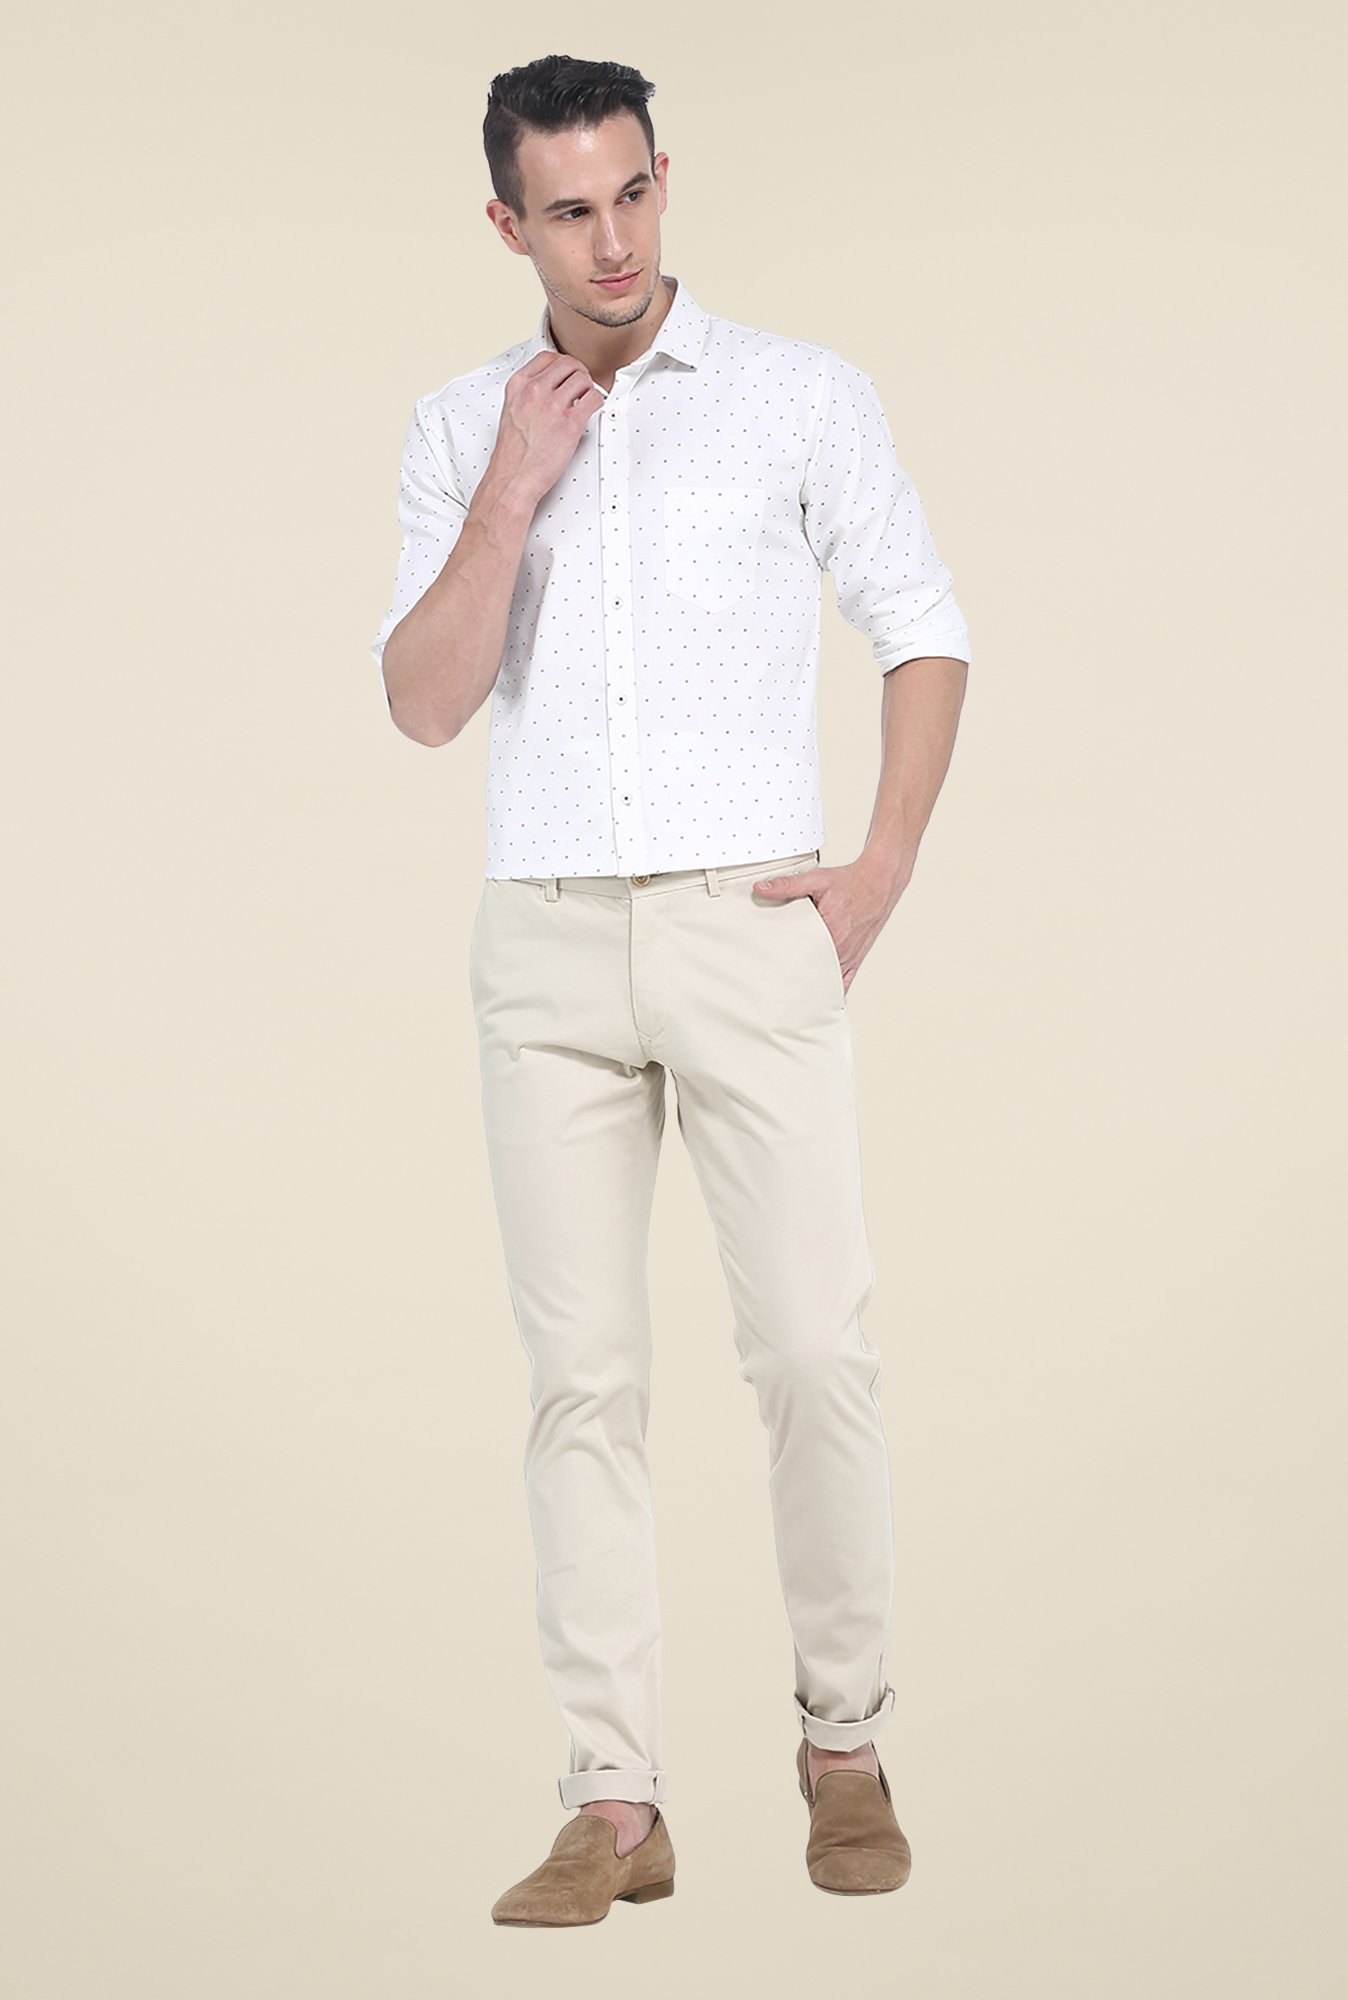 Basics White Printed Slim Fit Shirt